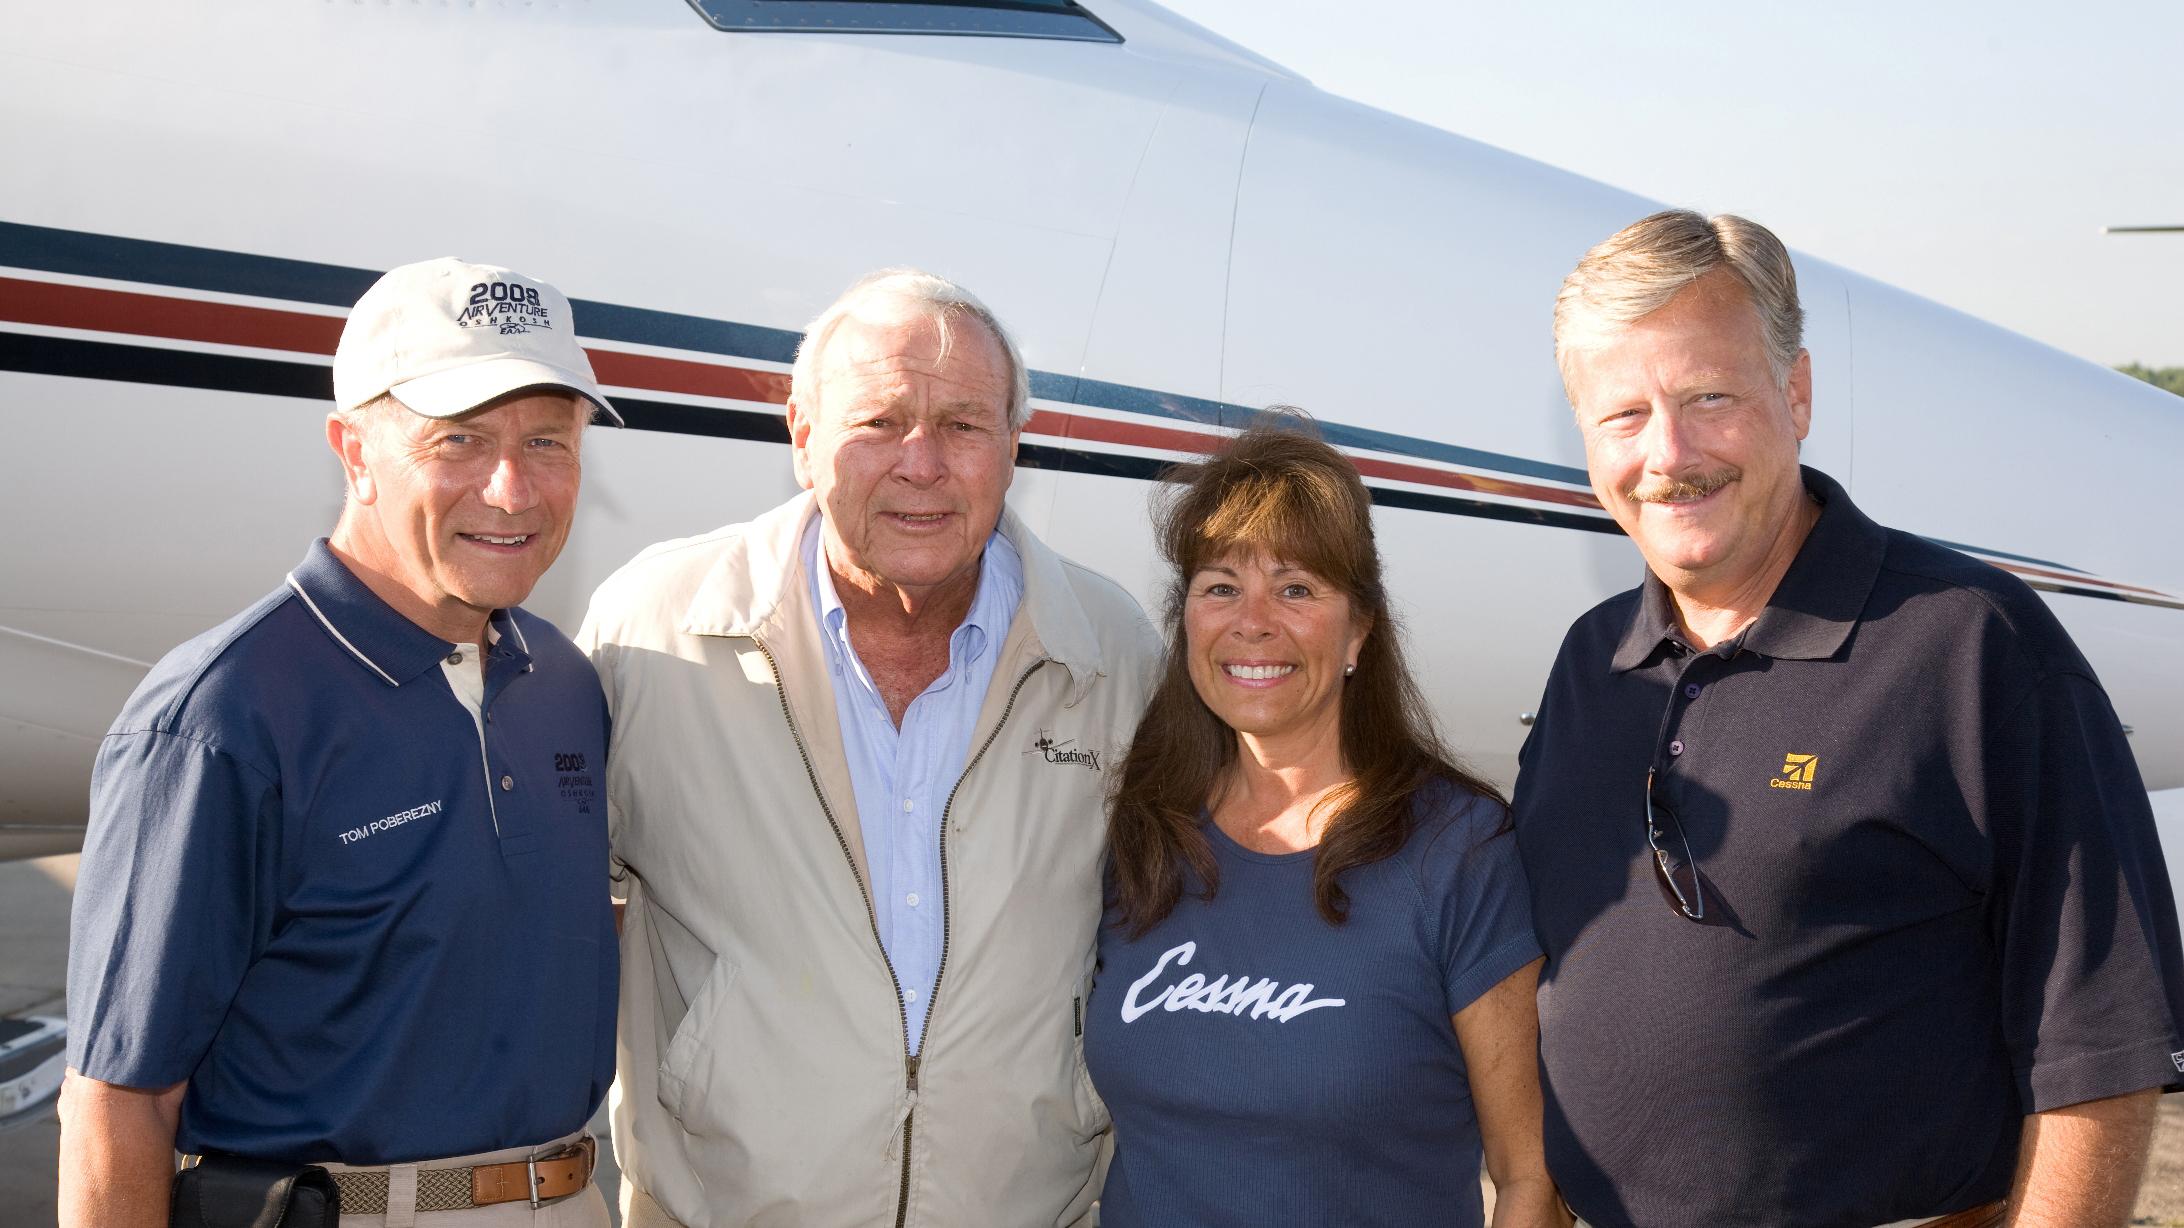 Golfing great Arnold Palmer joins former EAA president Tom Poberezny and Rose and Jack Pelton at the 2008 EAA AirVenture in Oshkosh. Pelton, the current Experimental Aircraft Association CEO and president, cemented a long friendship with Palmer when Pelton was the CEO of Cessna Aircraft. Photo courtesy of EAA.